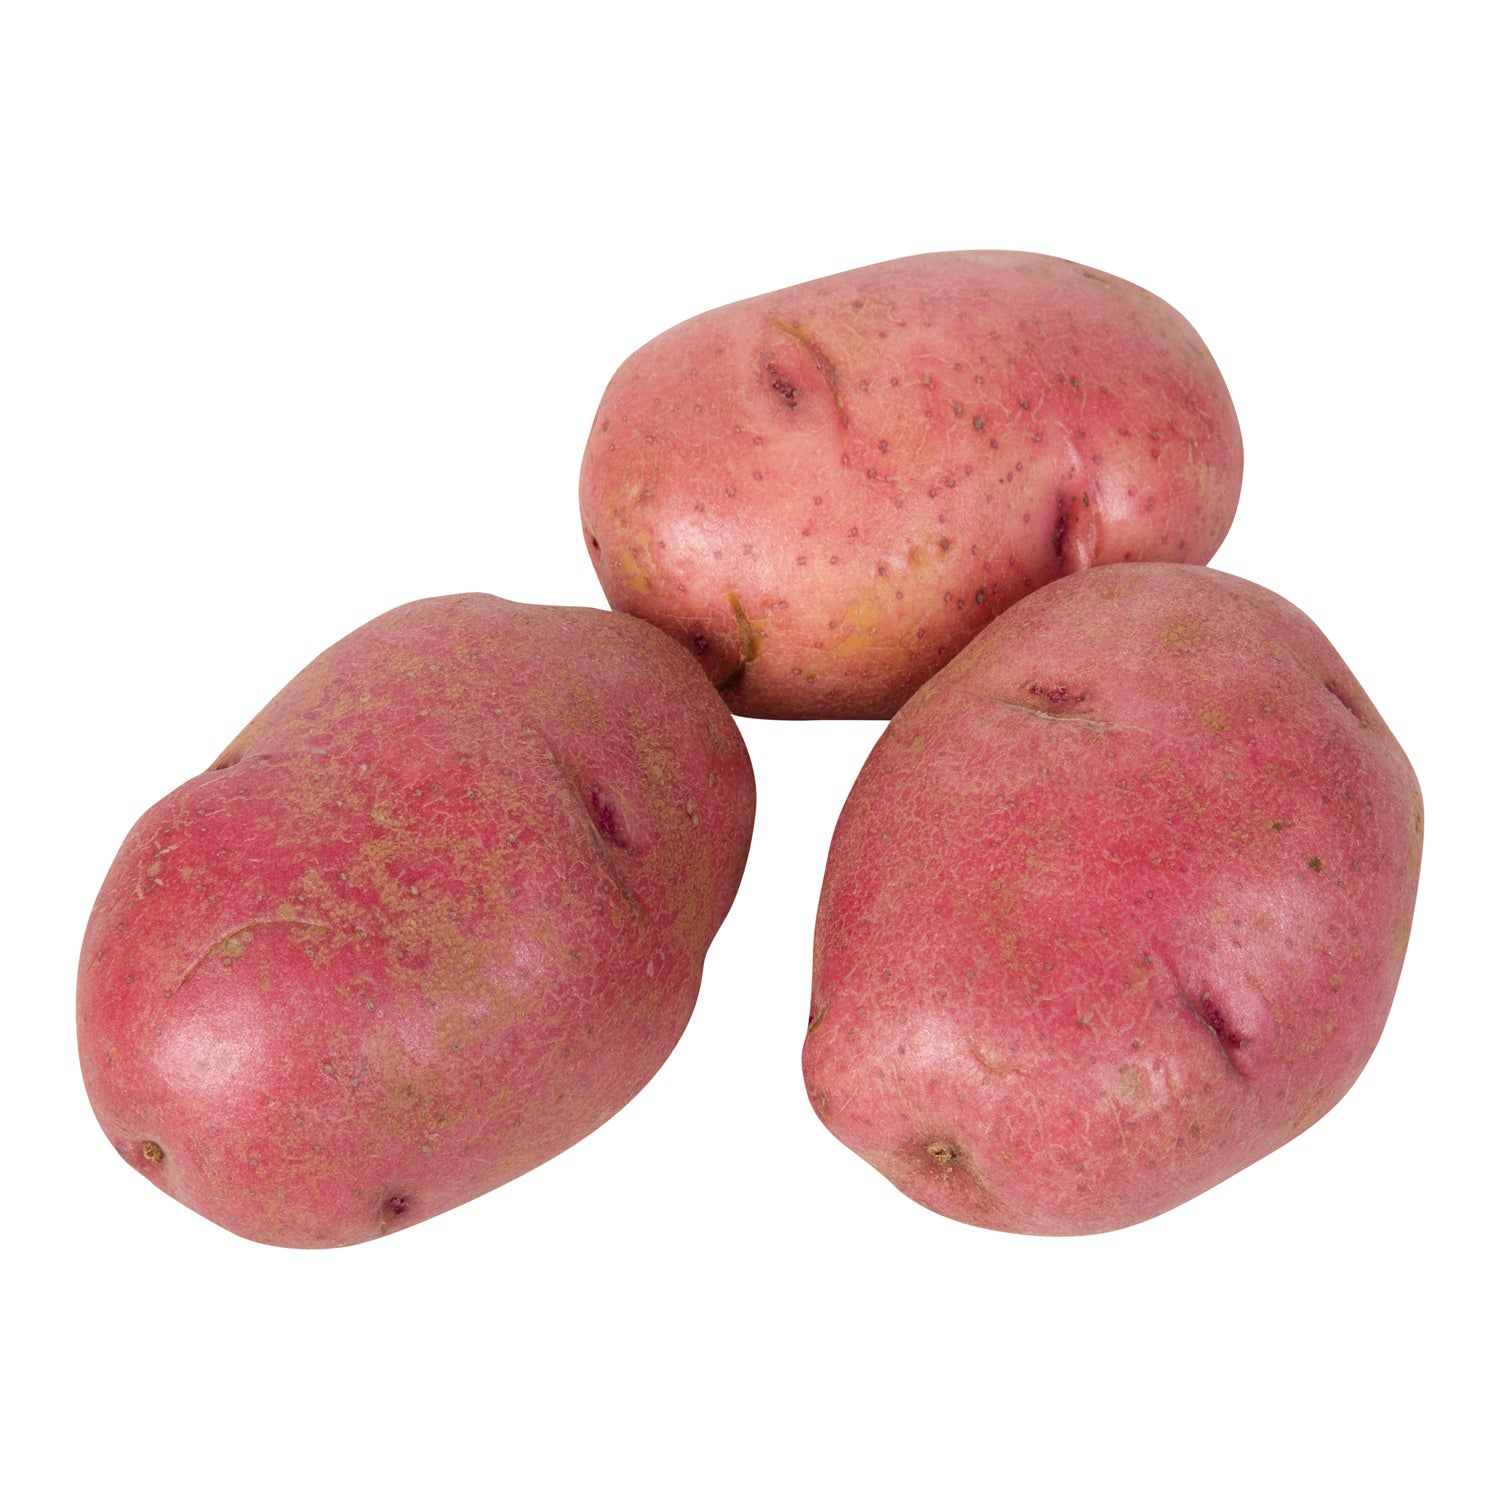 Sysco Imperial Fresh Red Potatoes A-Size 50 lb - 1 Pack [$0.87/lb]